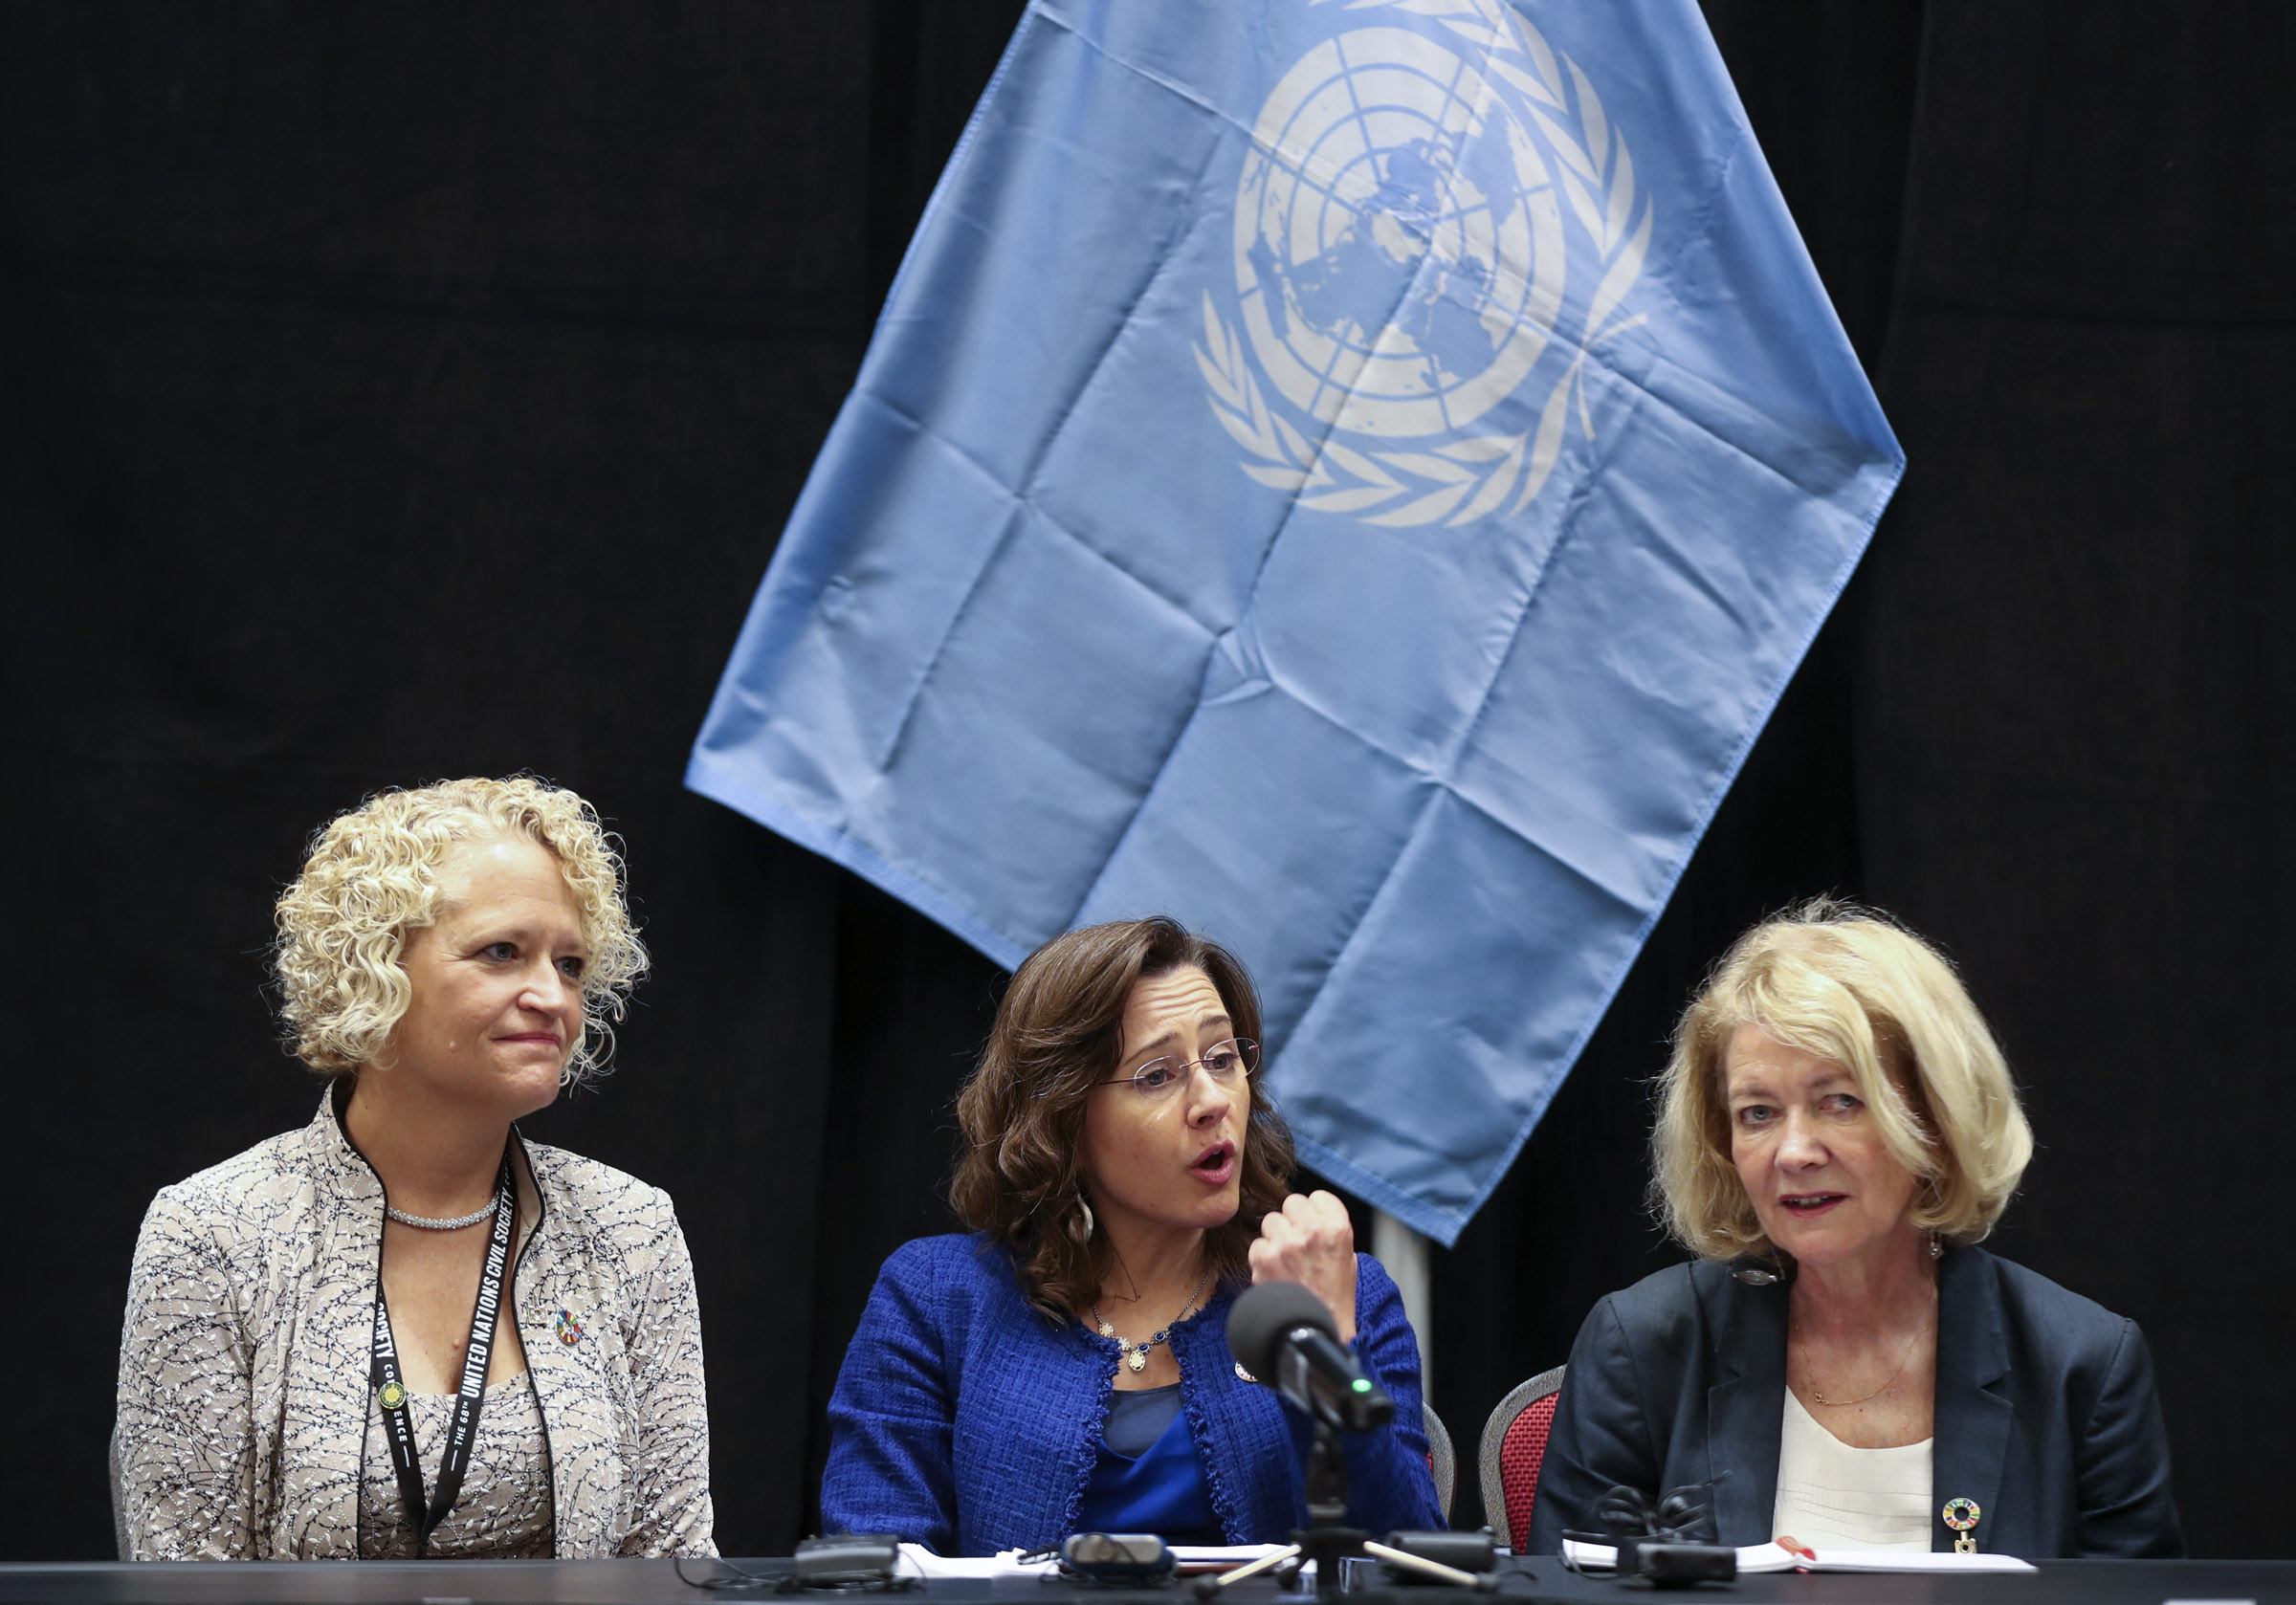 Salt Lake City Mayor Jackie Biskupski, left, and Alison Smale, United Nations undersecretary general for global communications, listens to Maruxa Cardama, chairwoman of the 68th United Nations Civil Society Conference, as they address the media at the Salt Palace Convention Center on Monday, Aug. 26, 2019.